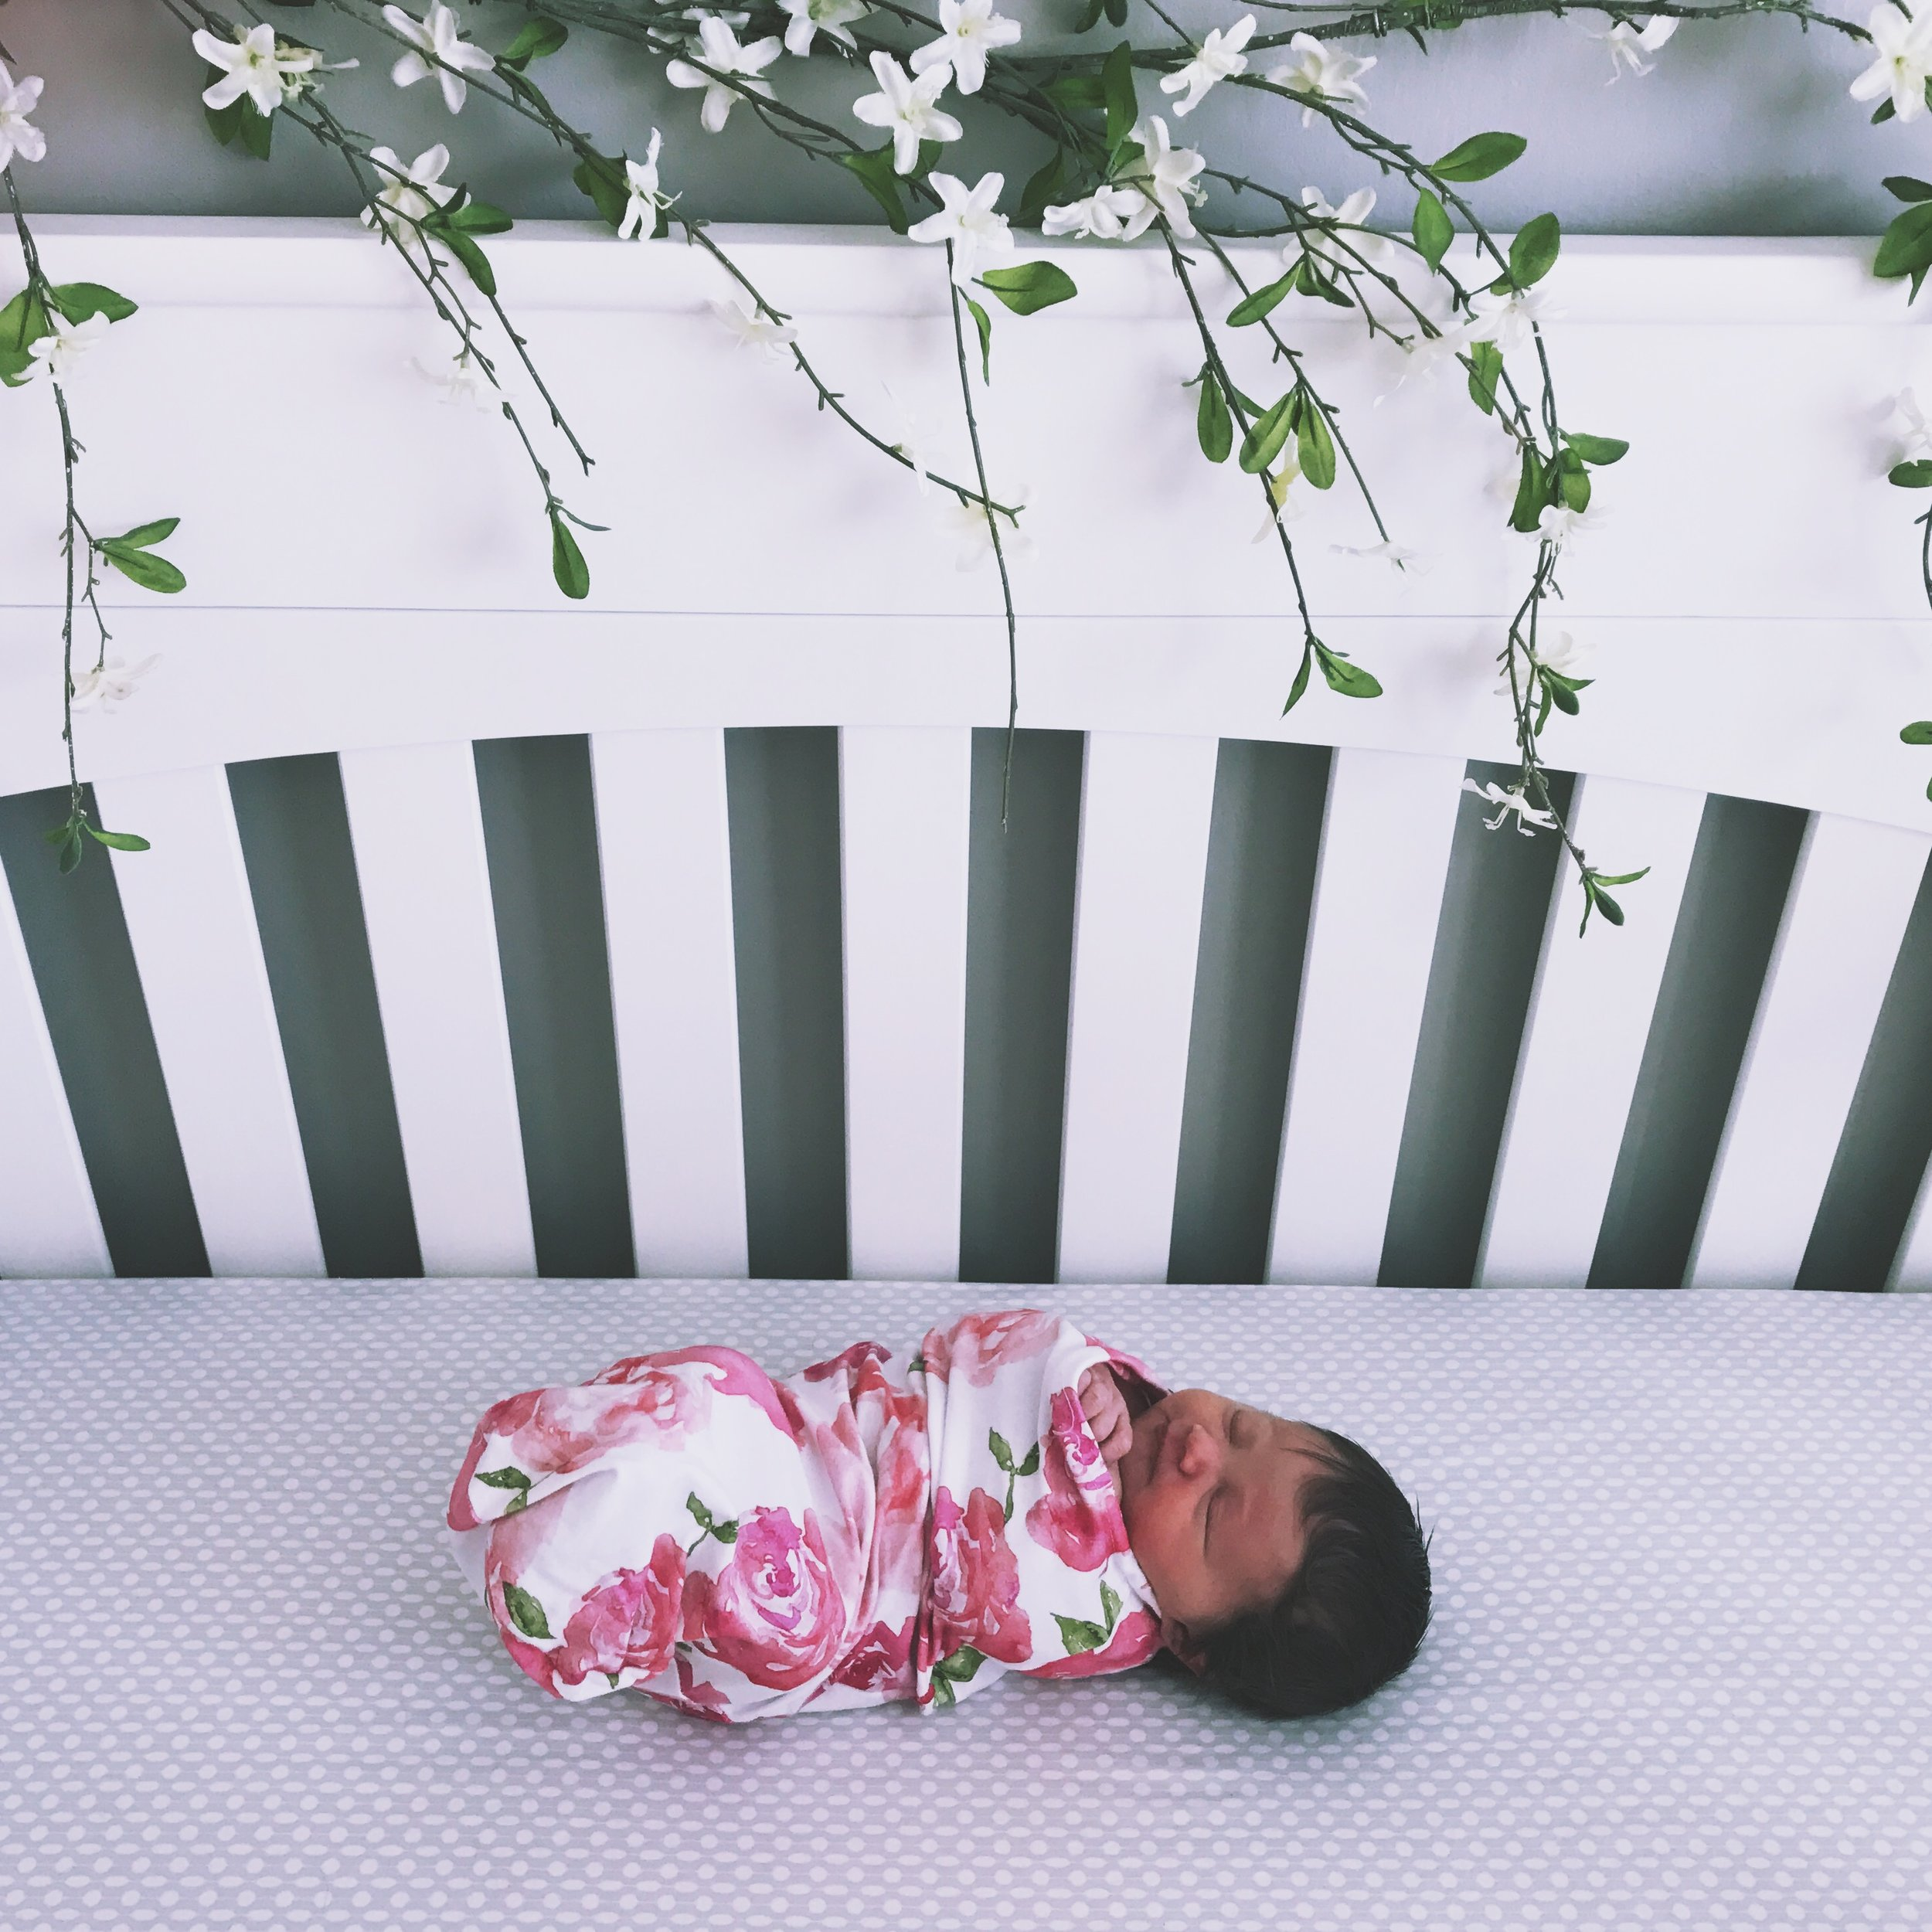 pictures with her eyes closed are few and far between - even as a newborn! she loves to be awake :)